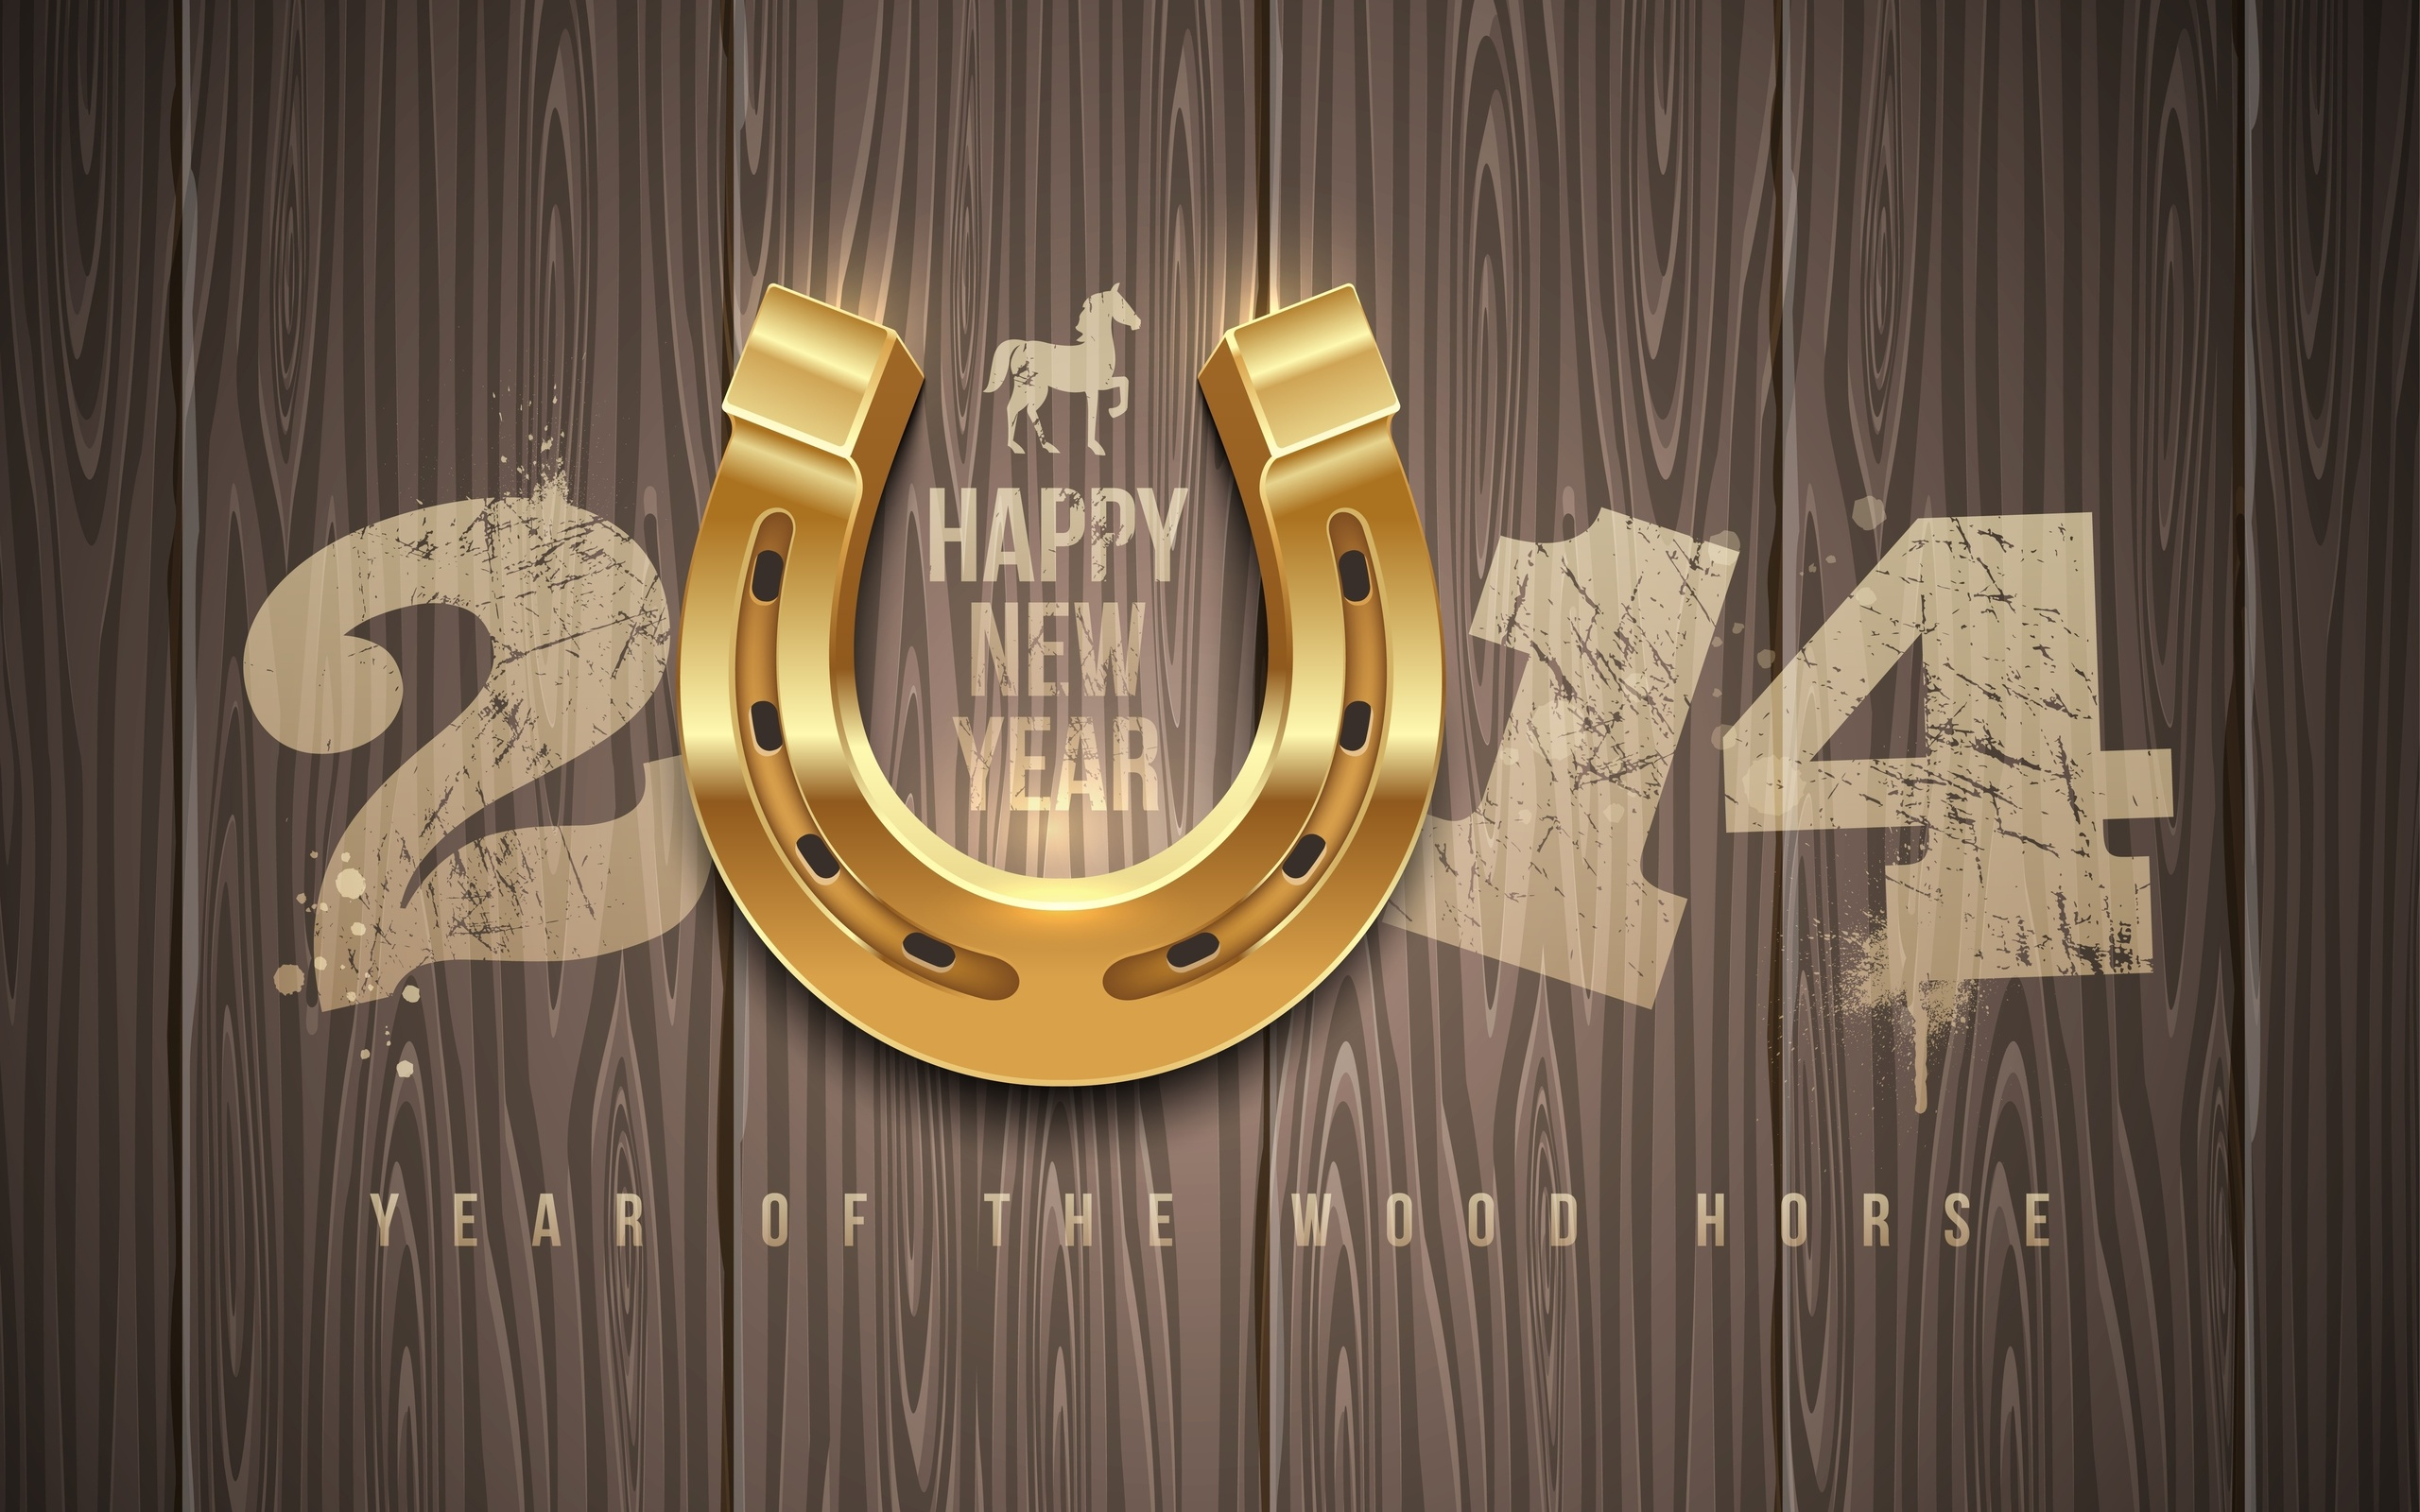 554102_god_loshadi_happy_new_year_novyiy_god_2014_2560x1600_(www_GdeFon_ru).jpg